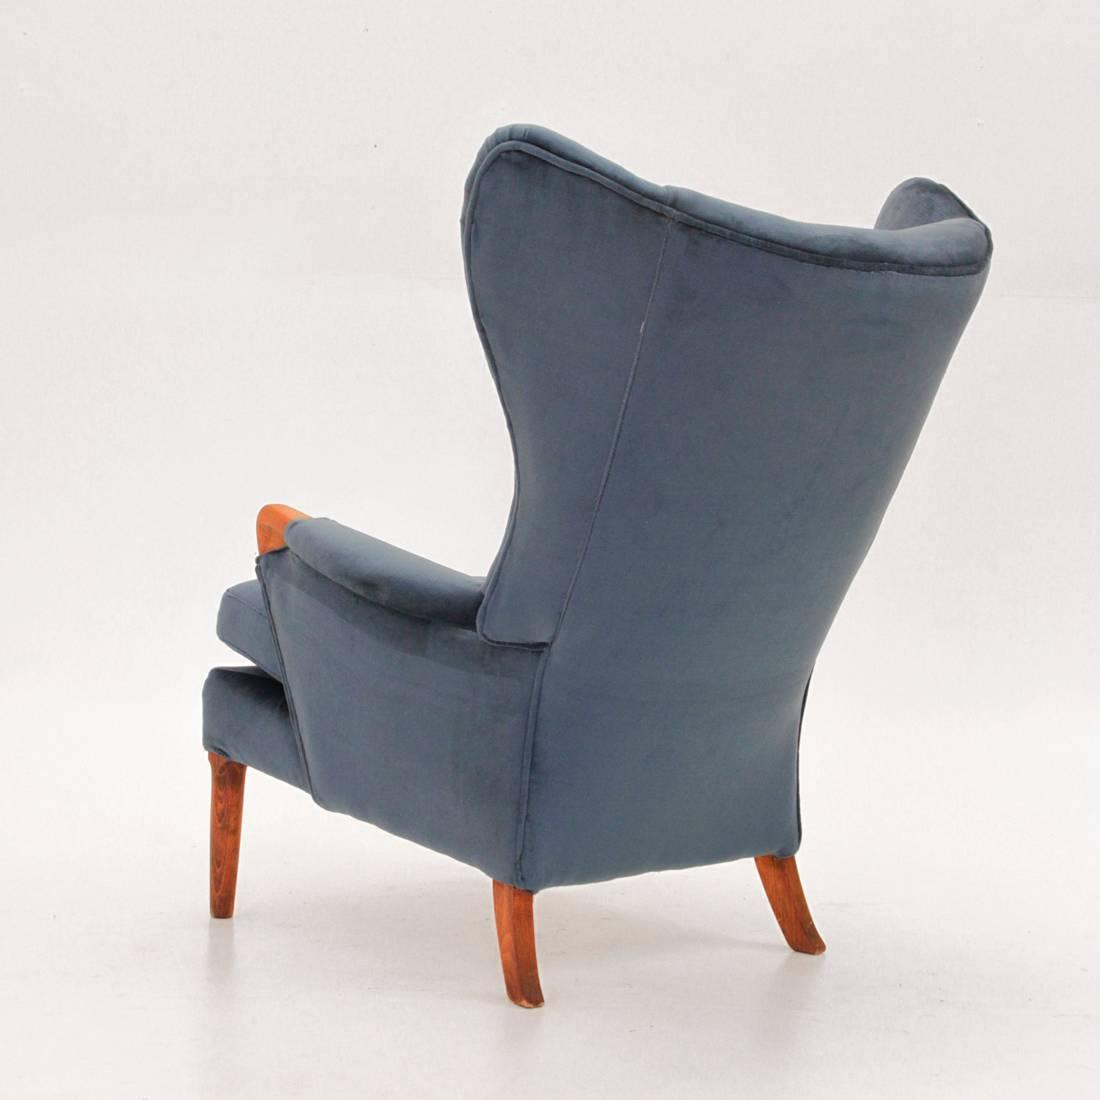 1960s Missoni Wingback Chair At 1stdibs: Vintage Velvet Wingback Chair From Parker Knoll, 1960s For